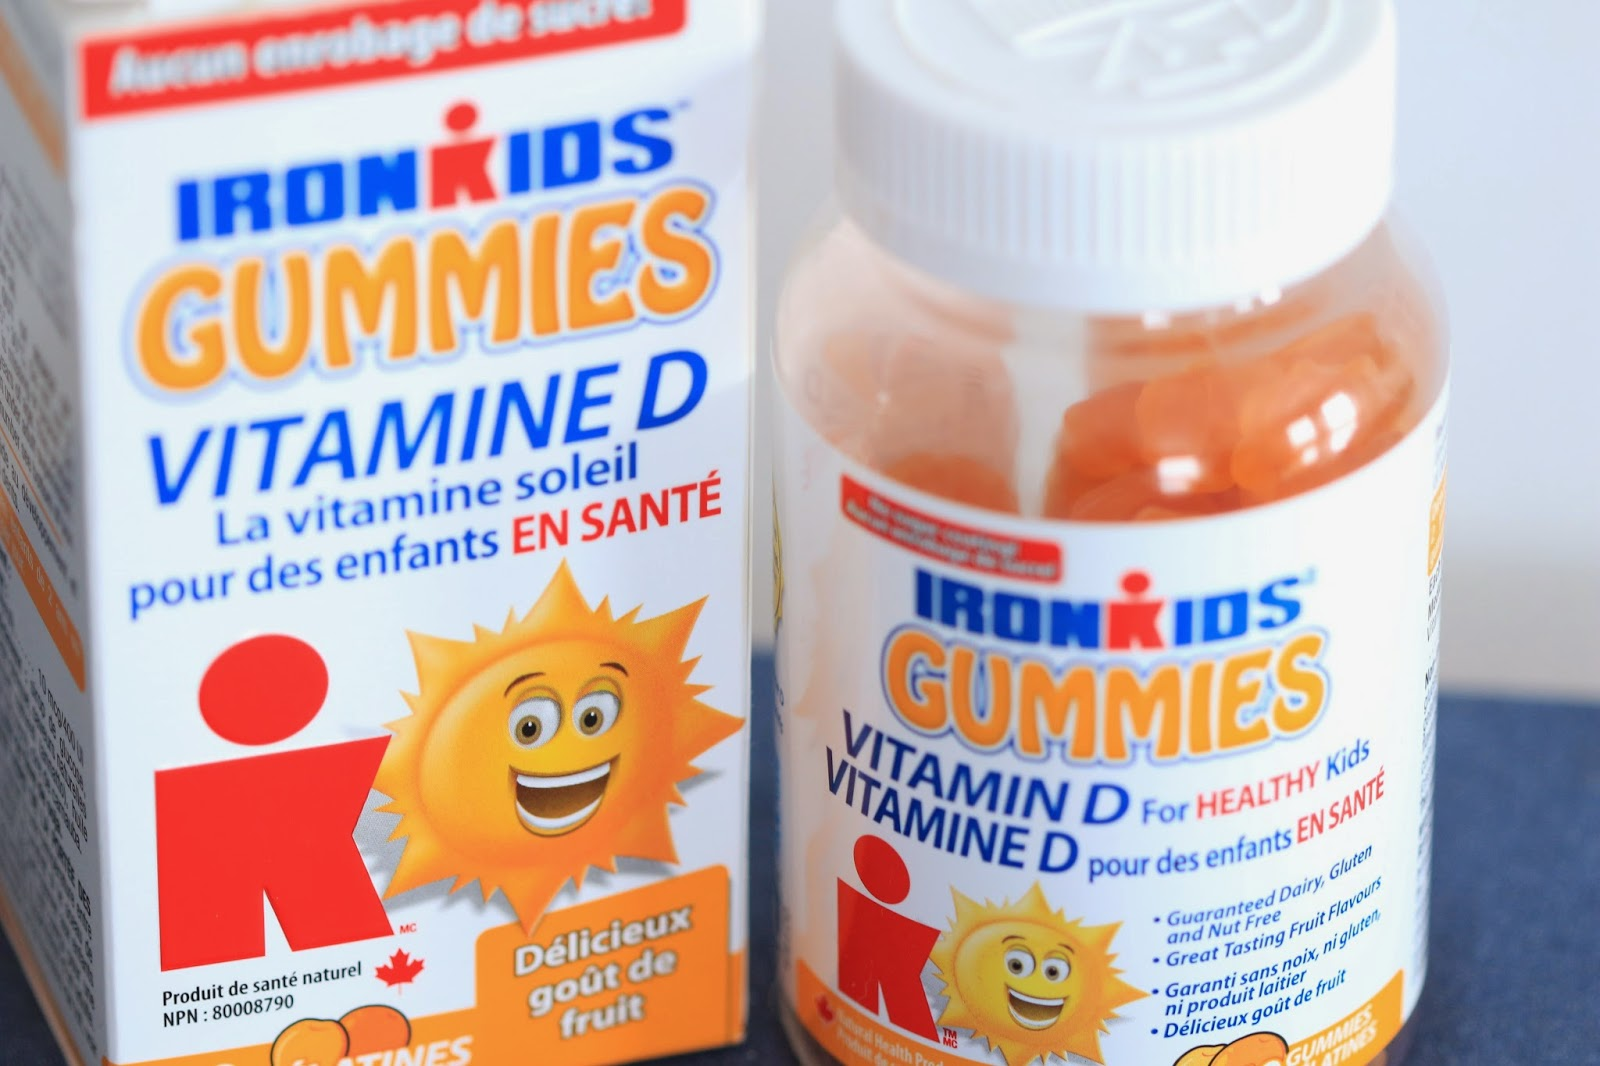 ironkids gummies with vitamin d